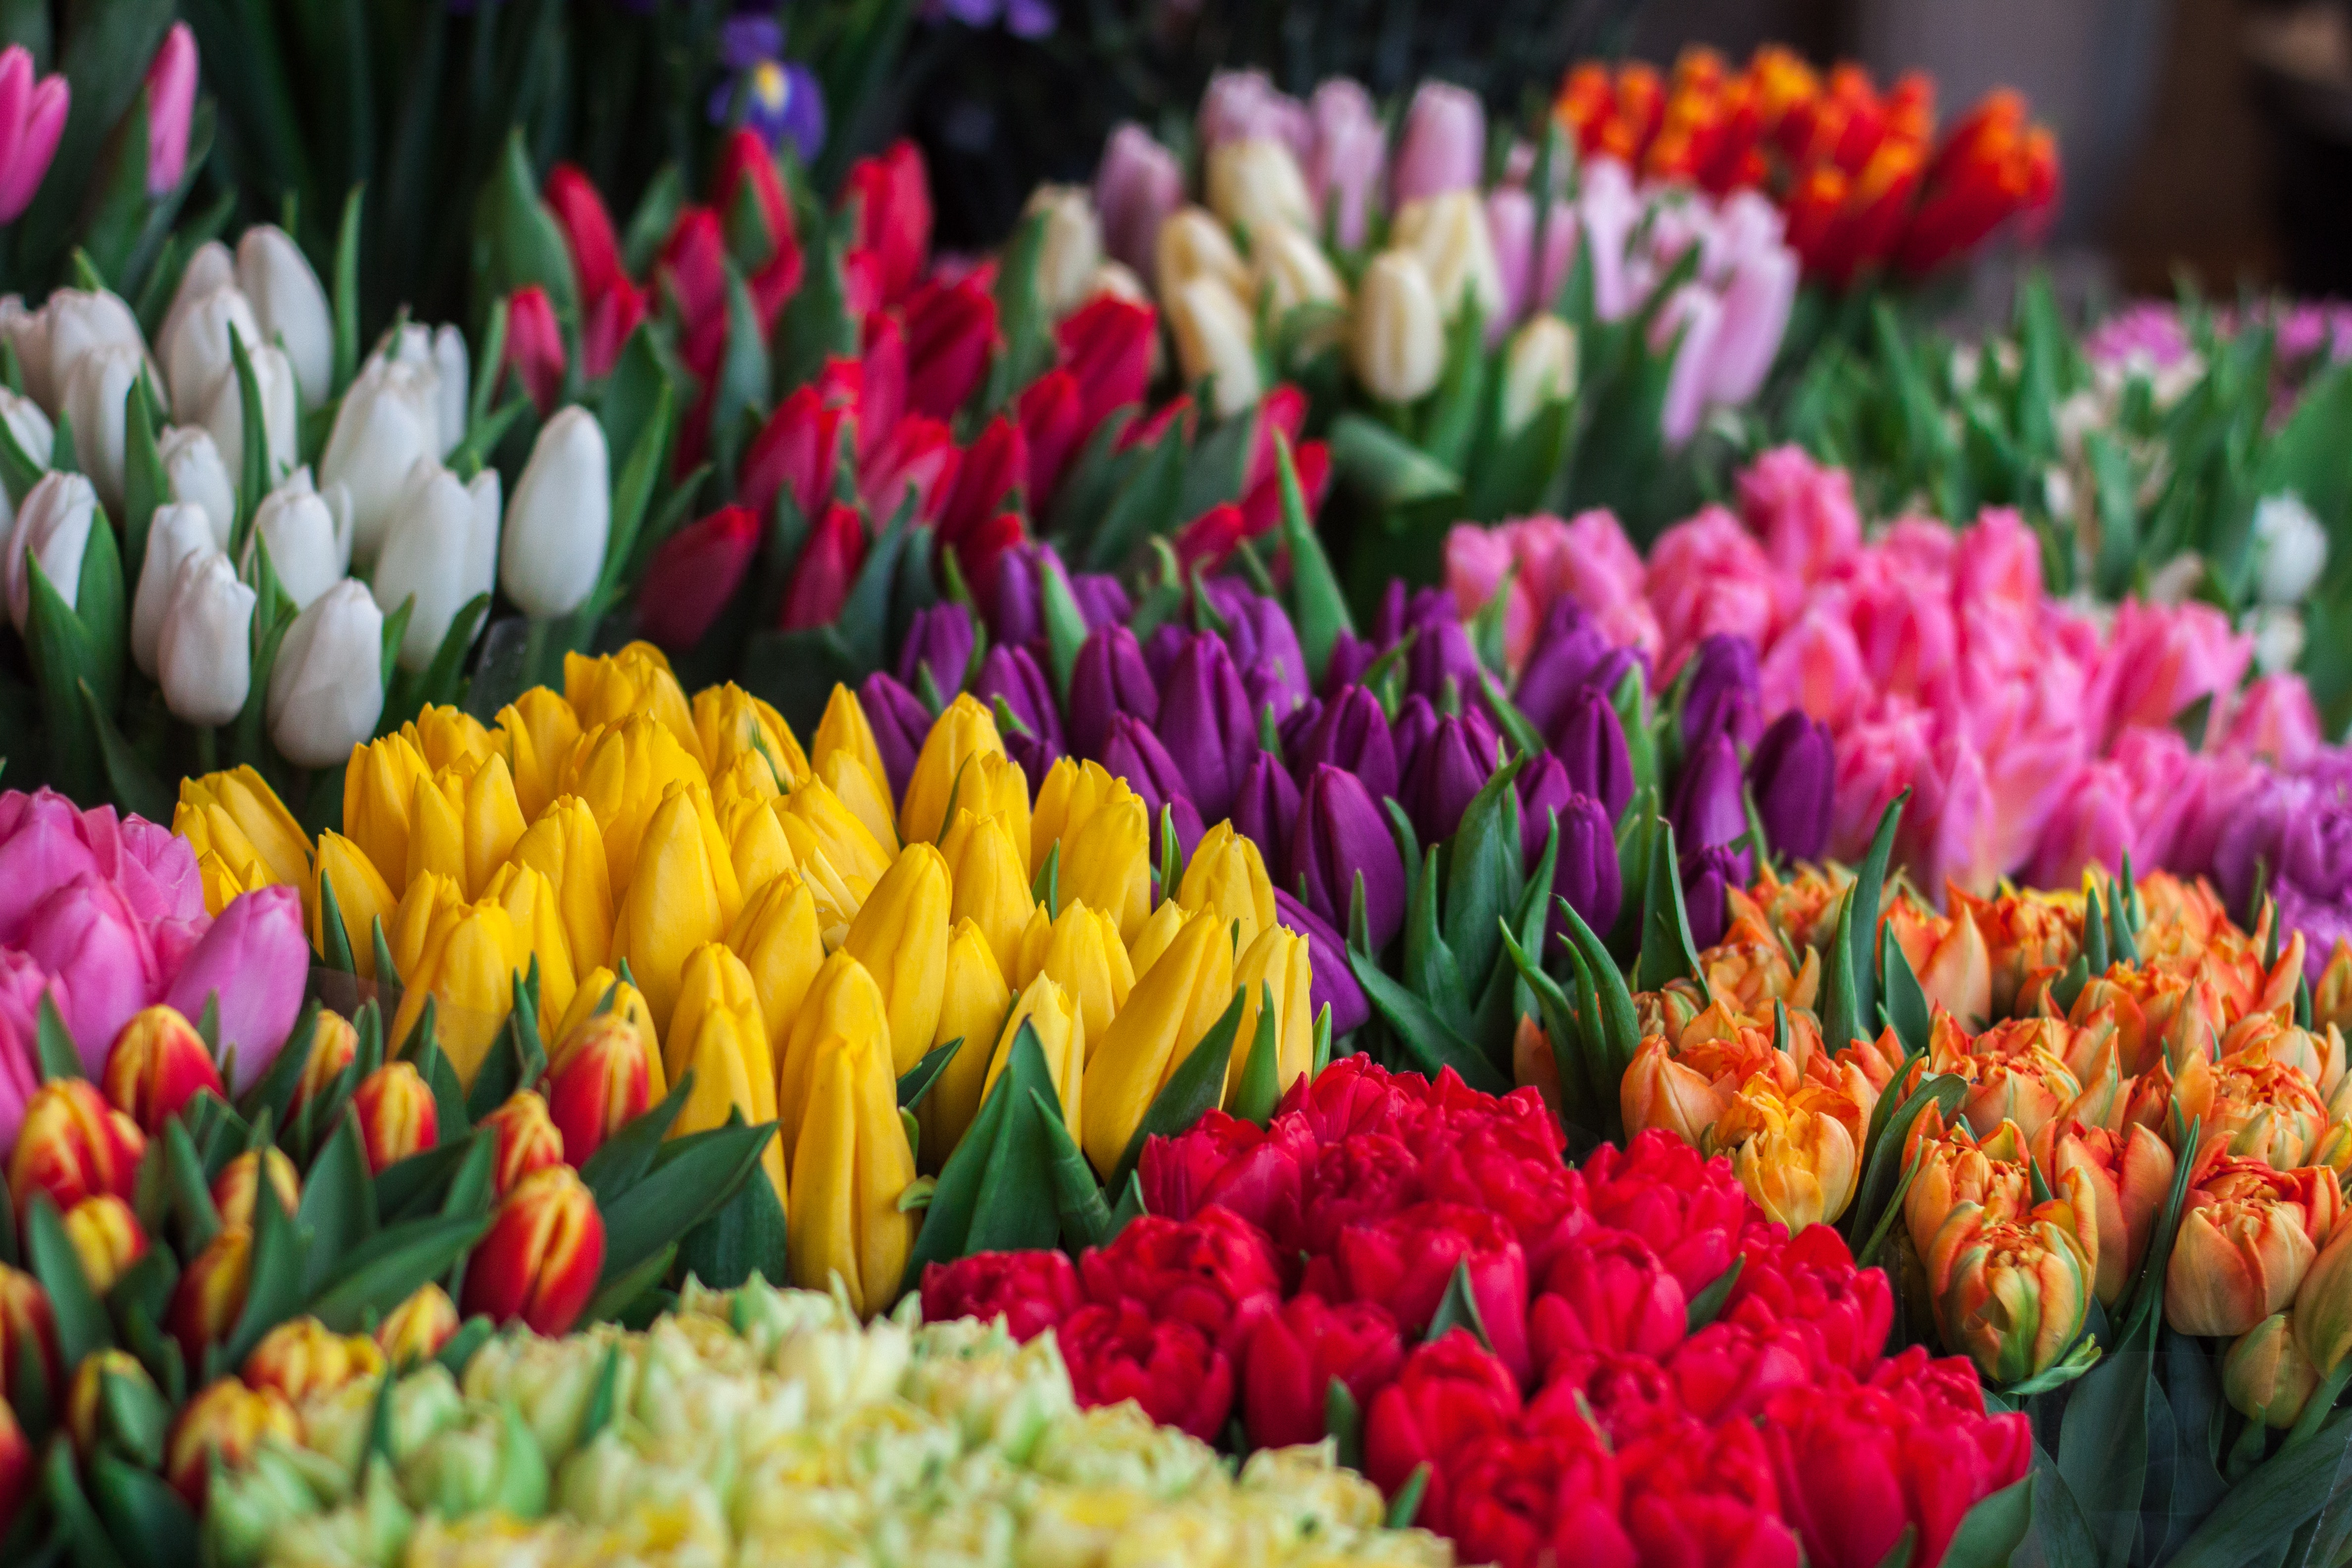 250 great tulips photos pexels free stock photos related searches flowers spring tulip roses spring flowers mightylinksfo